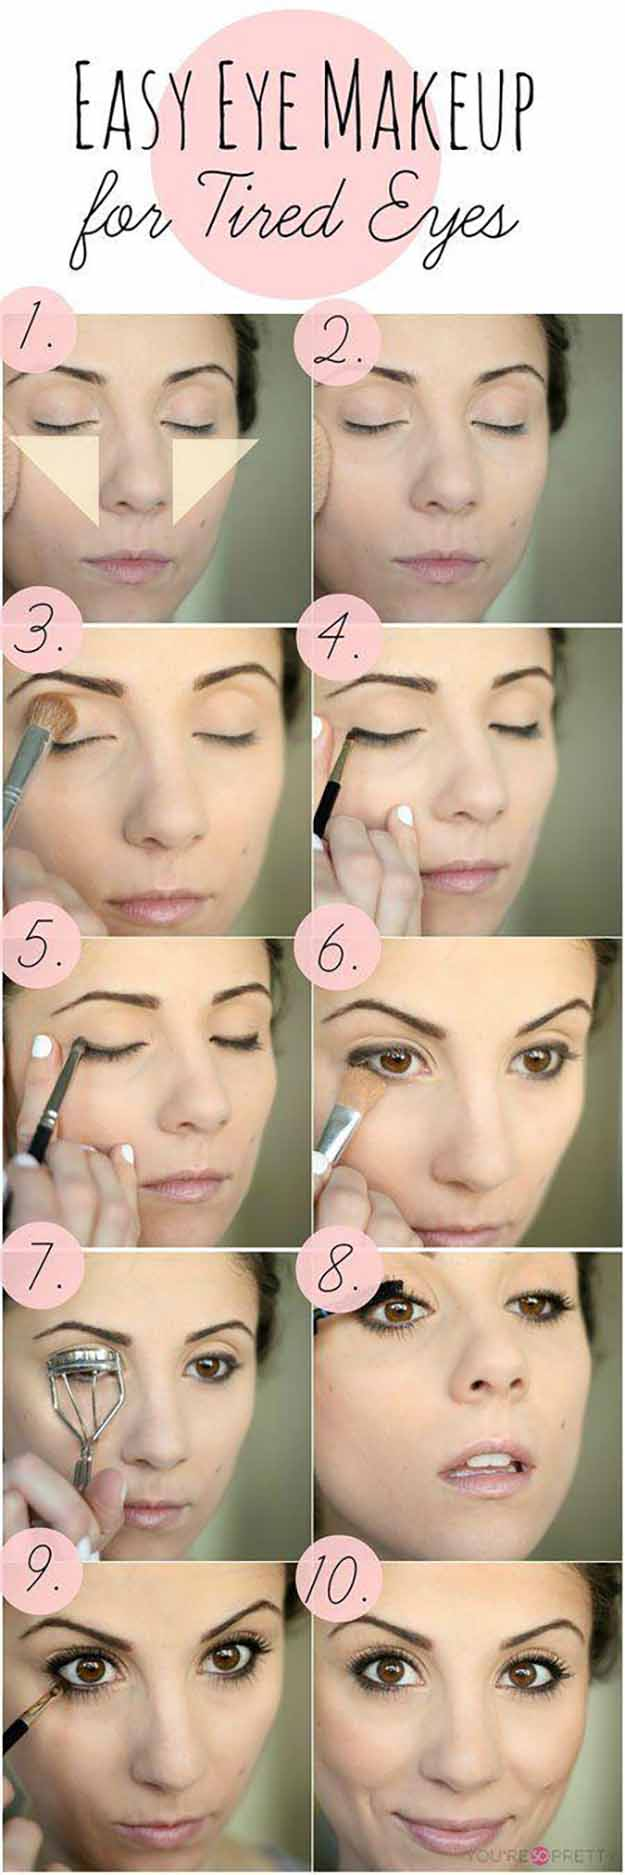 36 Amazing Beauty Hacks | To Die For Make Up Tips36 Amazing Beauty Hacks | To Die For Make Up Tips